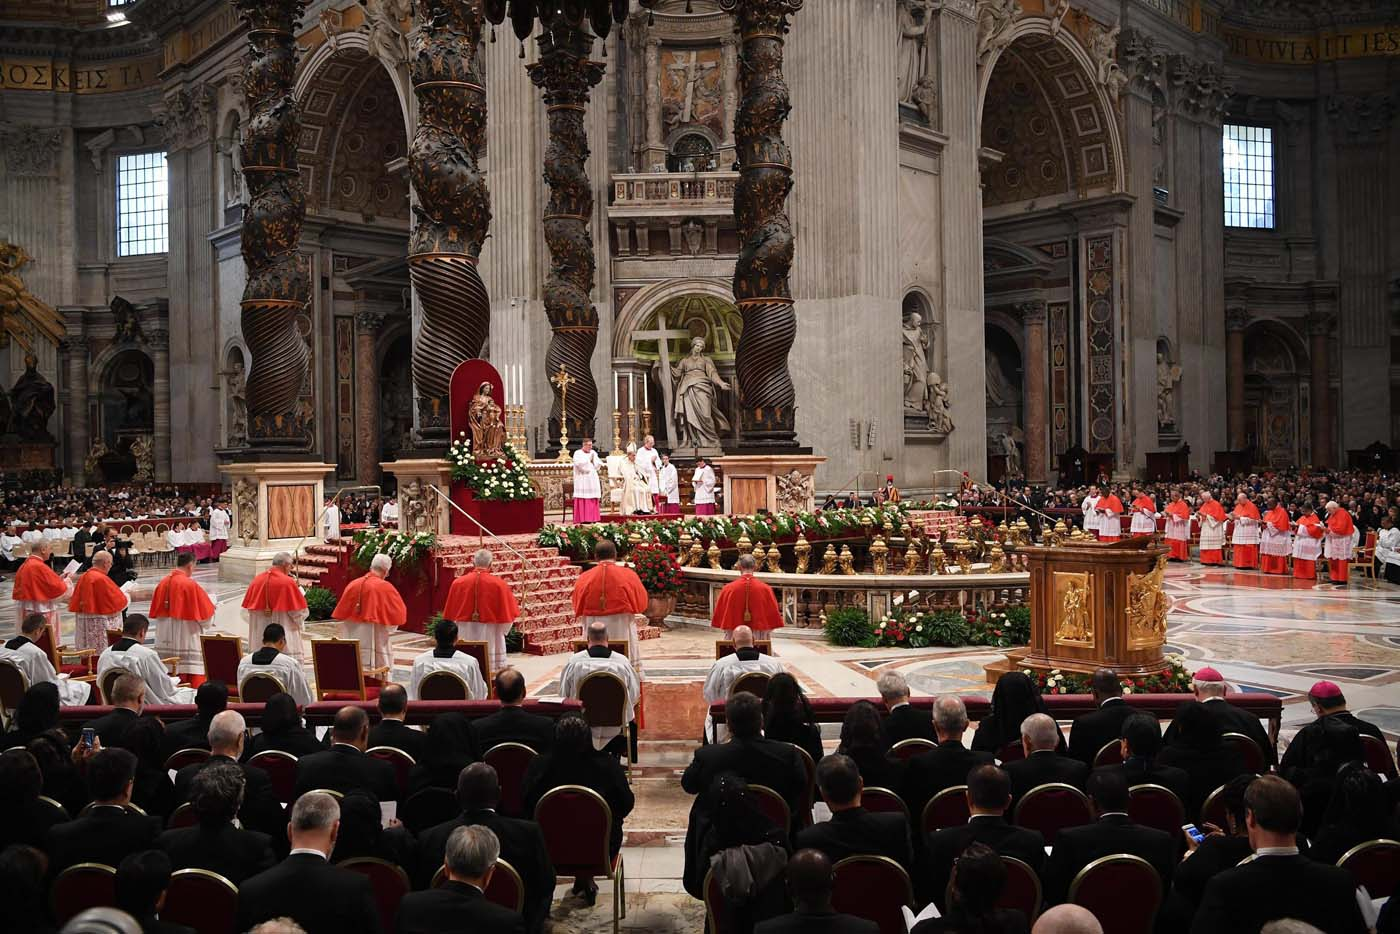 . Vatican City (Vatican City State (holy See)), 19/11/2016.- Pope Francis (C) presides the Consistory ceremony in Vatican, 19 November 2016. Pope Francis has named 17 new cardinals, 13 of them under age 80 and thus eligible to vote in a conclave to elect his successor. (Papa) EFE/EPA/MAURIZIO BRAMBATTI